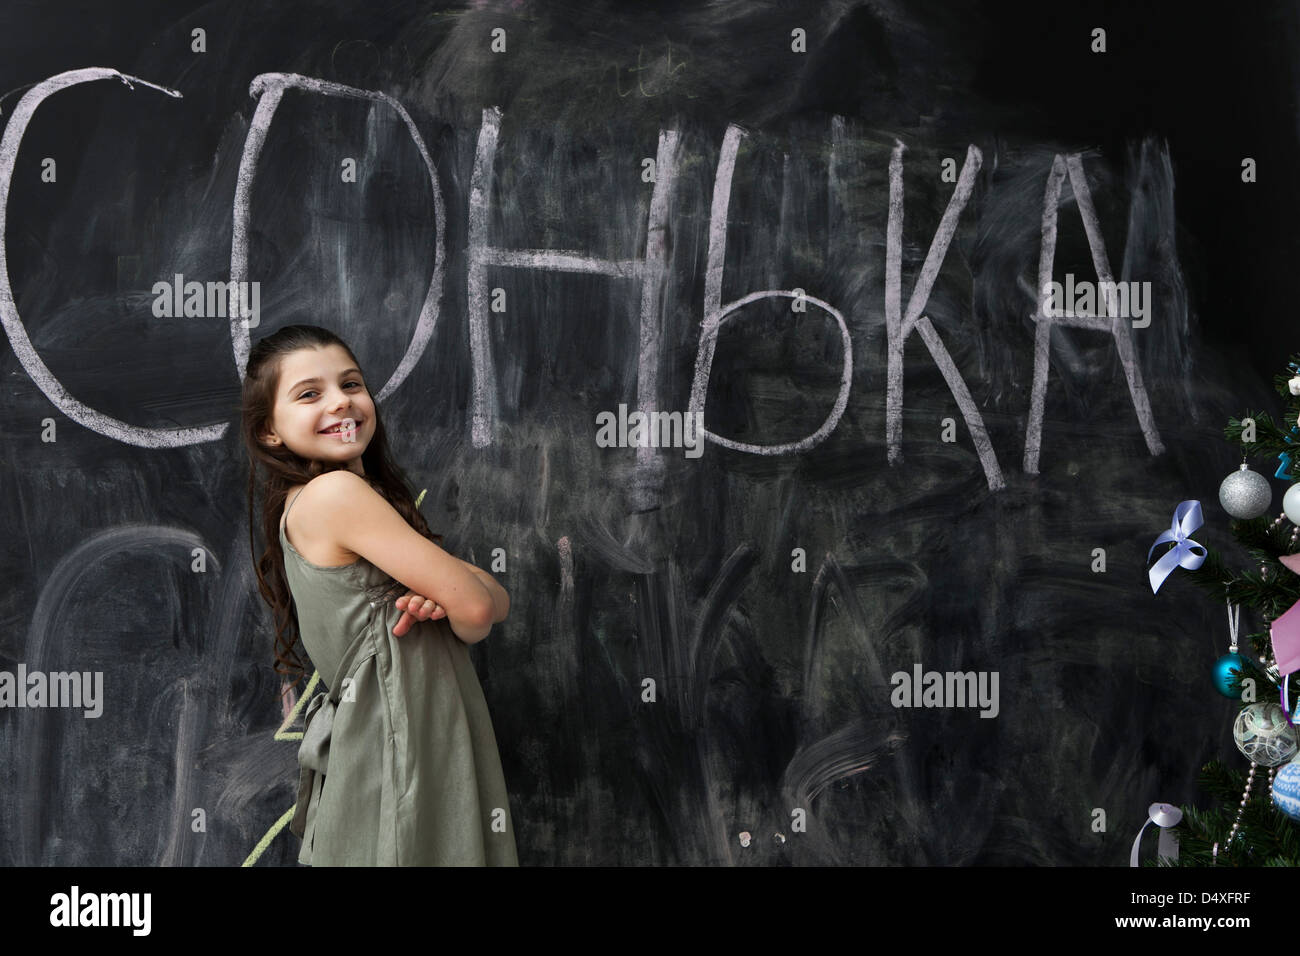 Girl in russian language